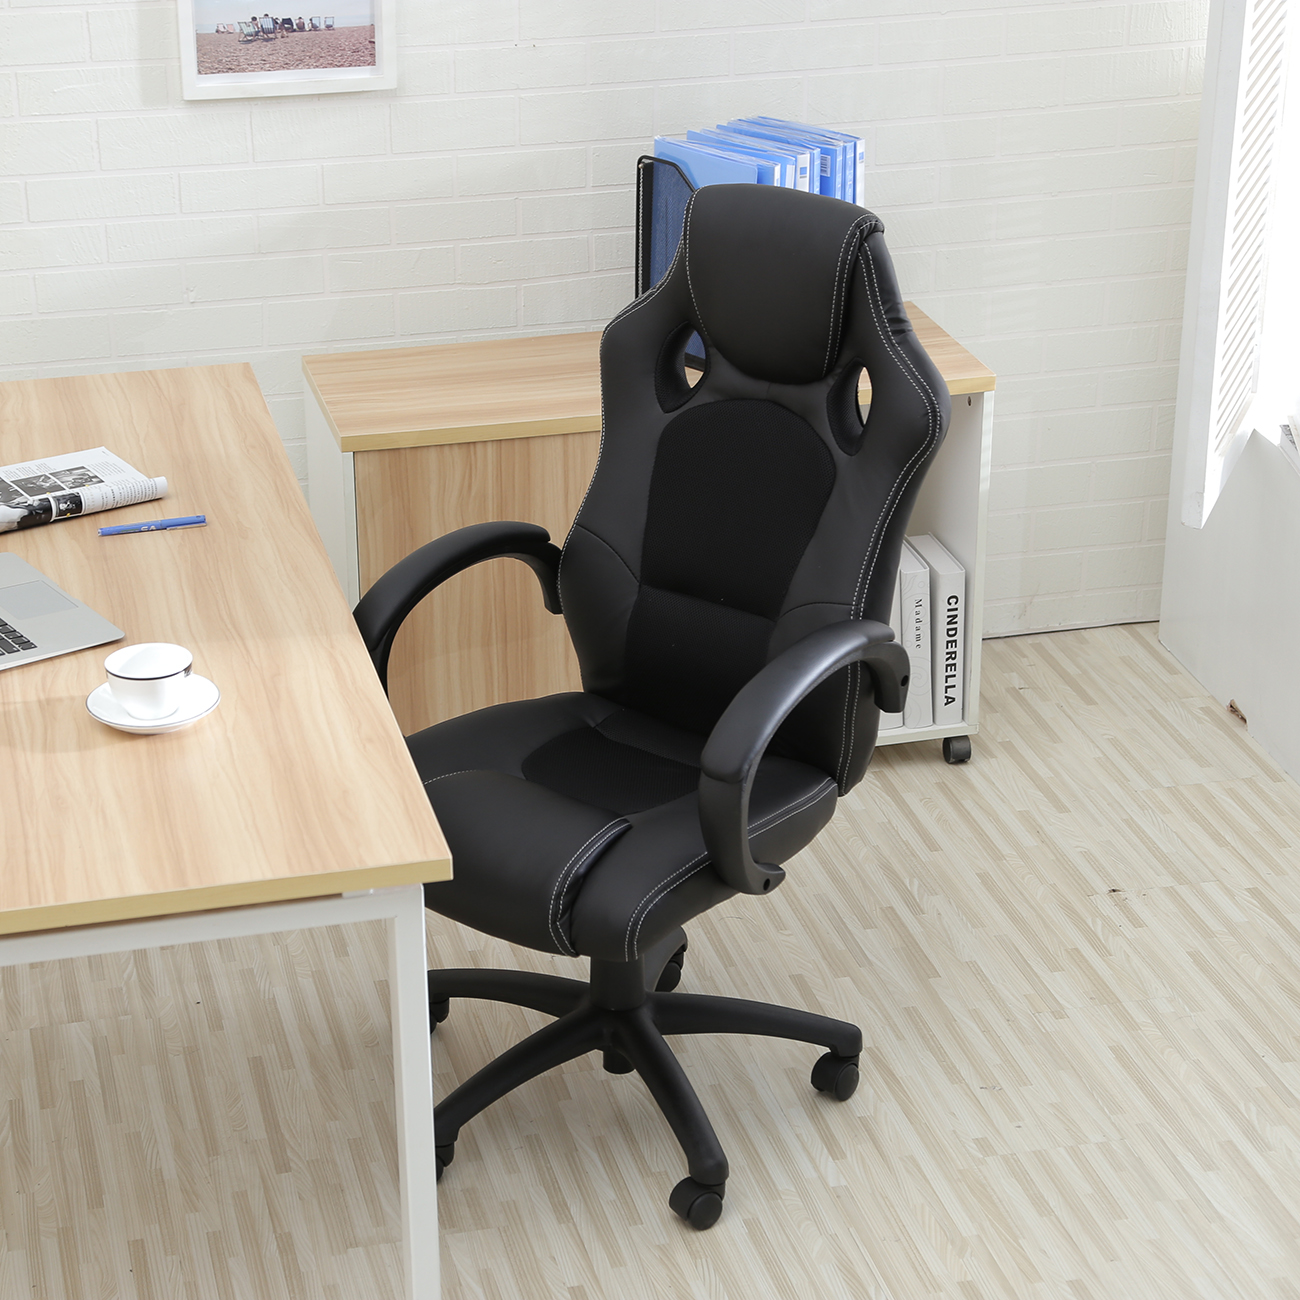 high back race car style bucket seat office desk chair gaming